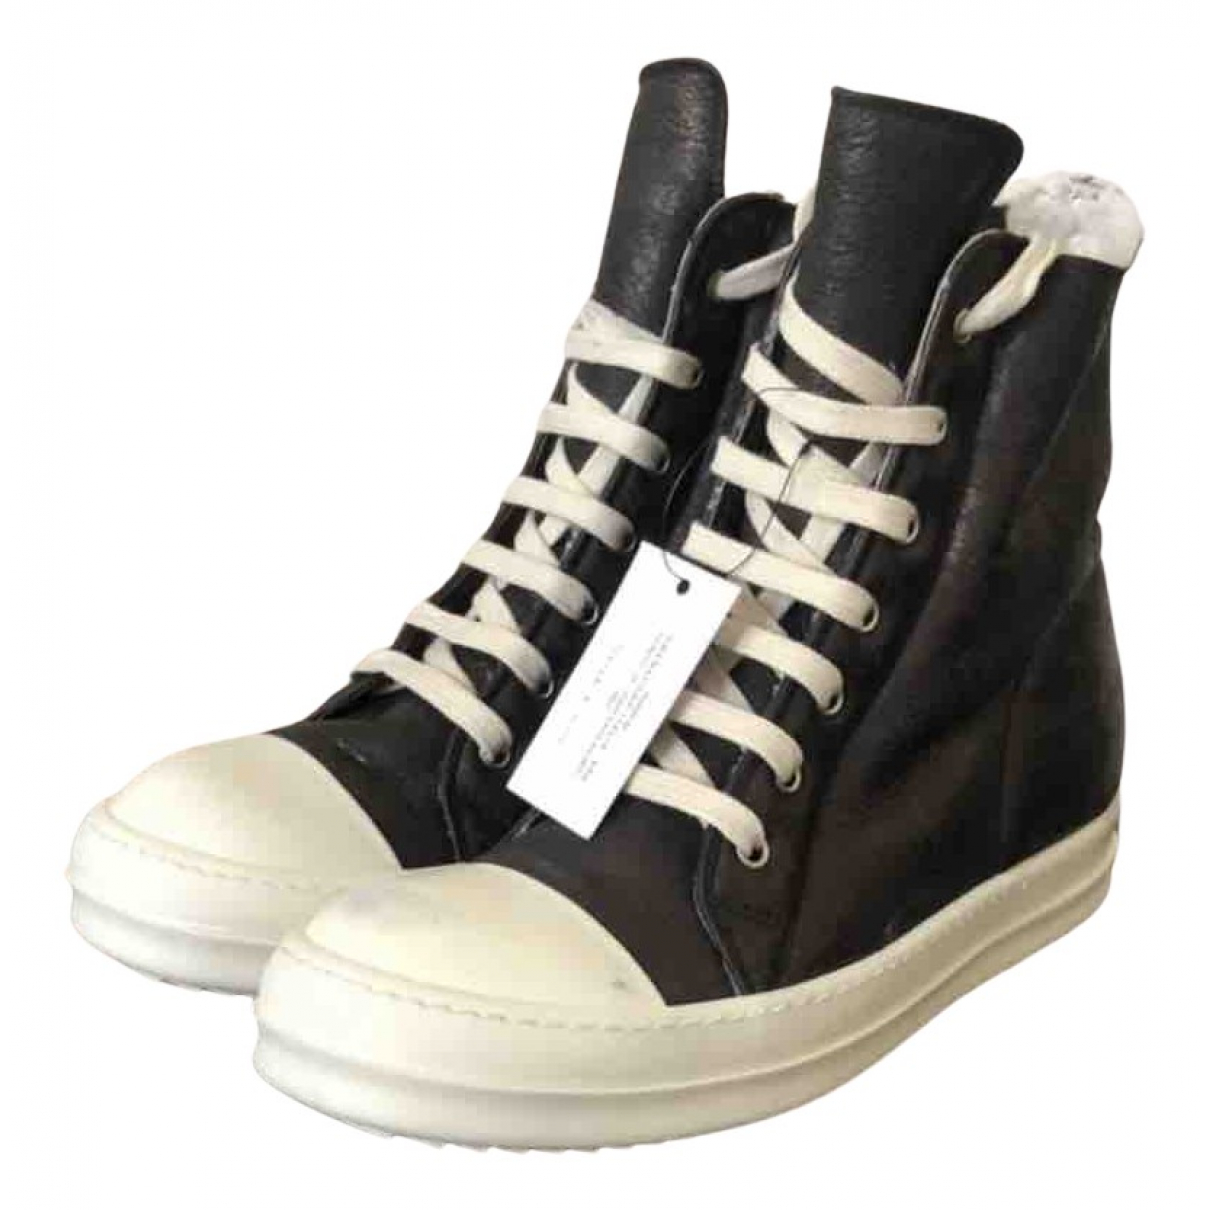 Rick Owens N Black Leather Trainers for Men 40 EU